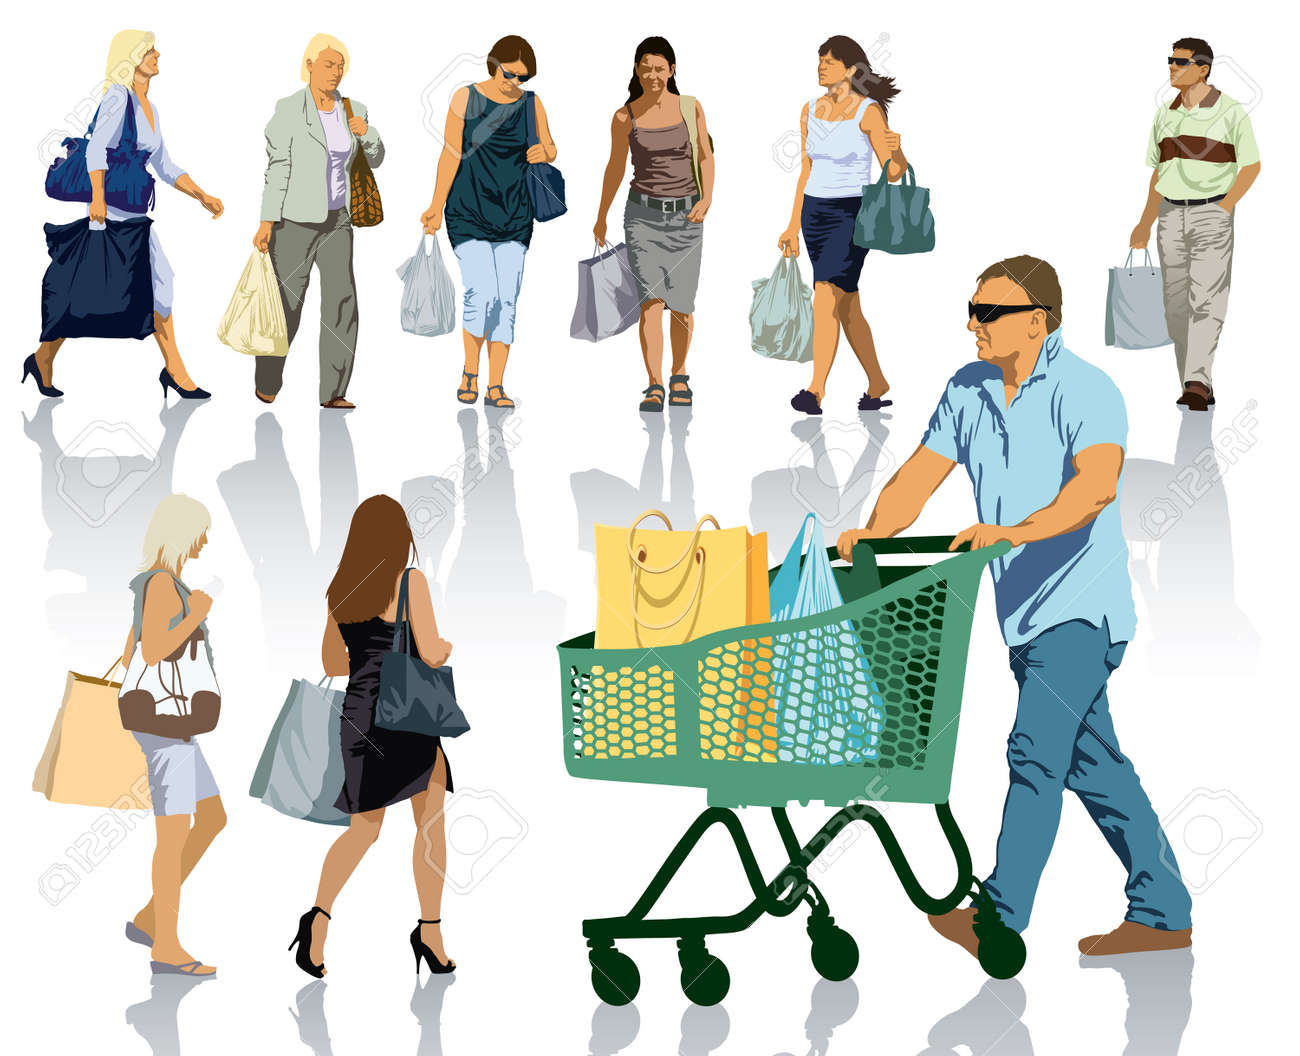 Set of people silhouettes. Happy shopping people holding bags with products. Standard-Bild - 23293476